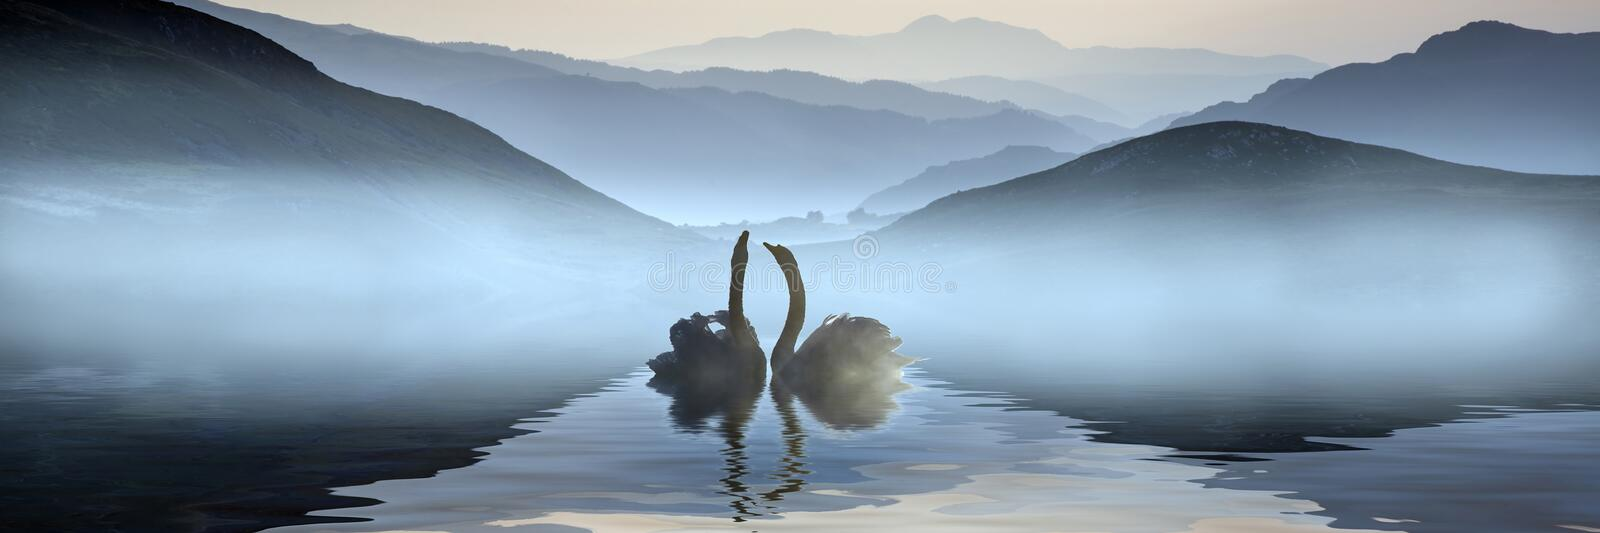 Beautiful romantic image of swans on misty lake with mountains i stock photo